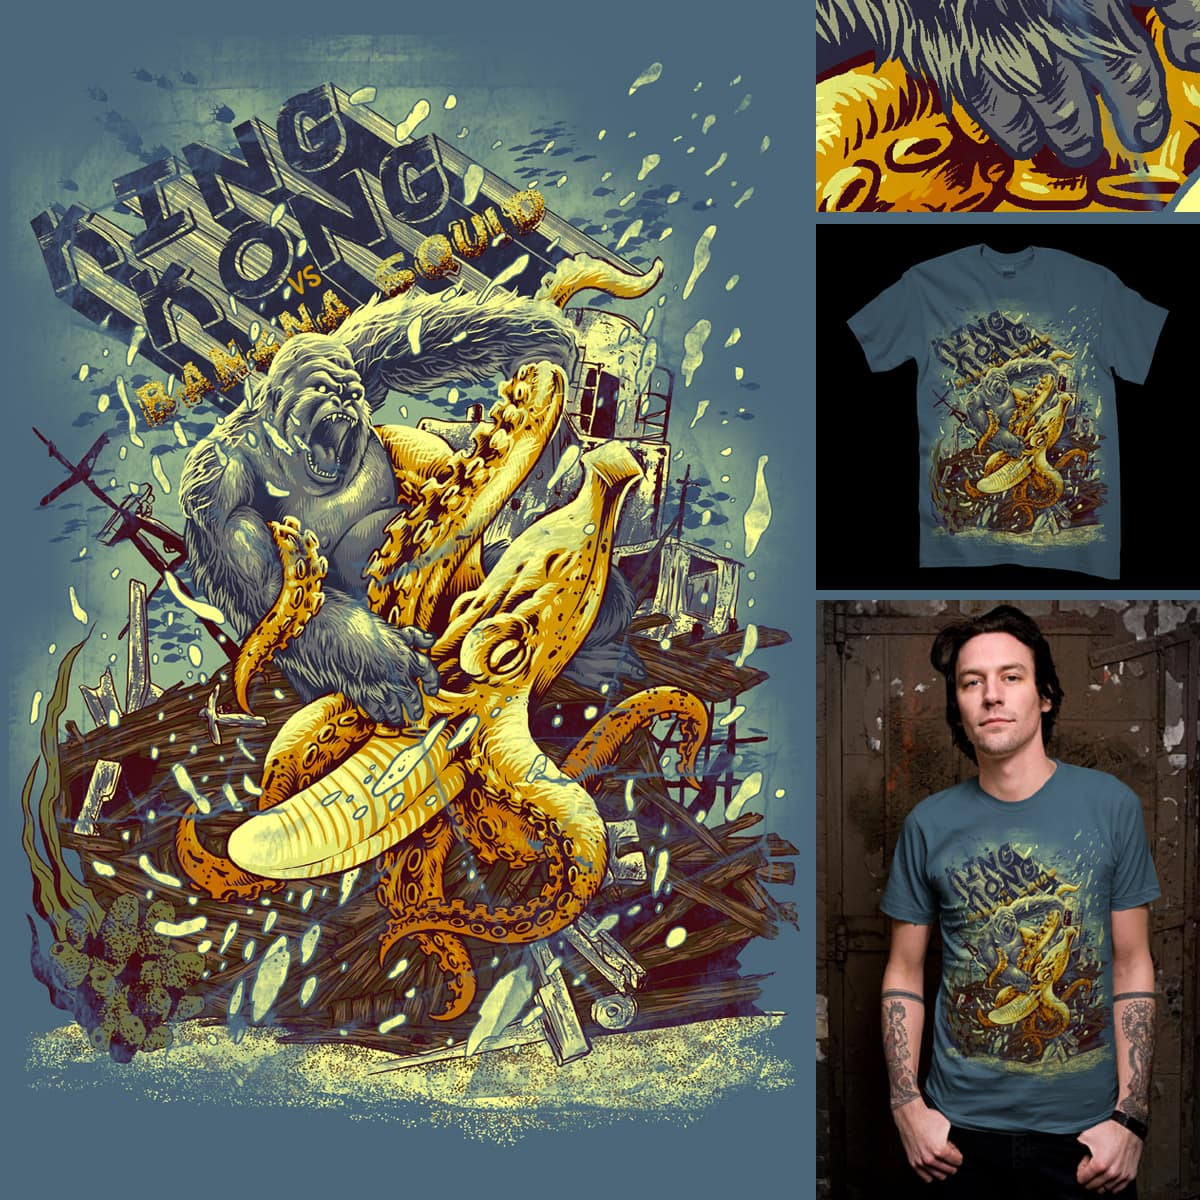 Kingkong VS Banana Squid by kooky love and markusmanson on Threadless